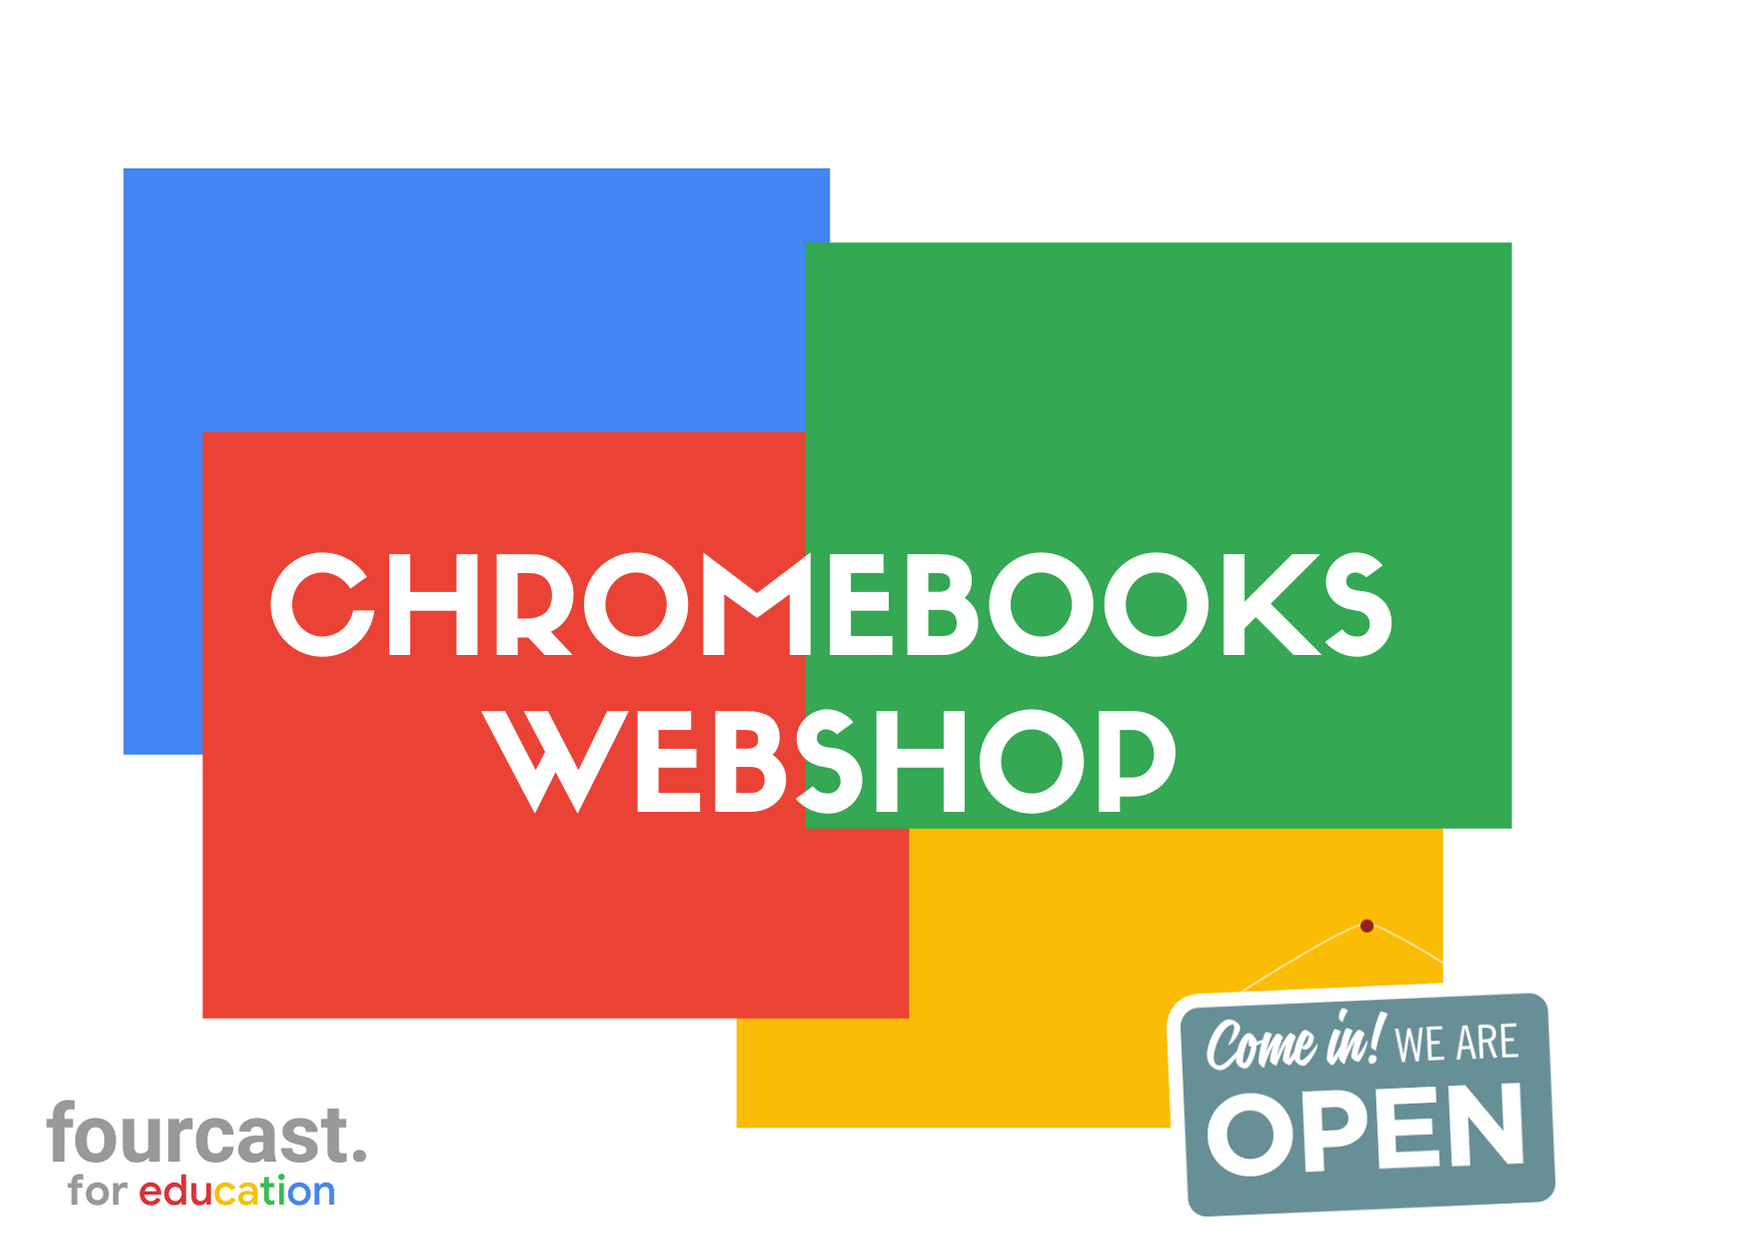 WEBSHOP Chromebooks Fourcast for Education